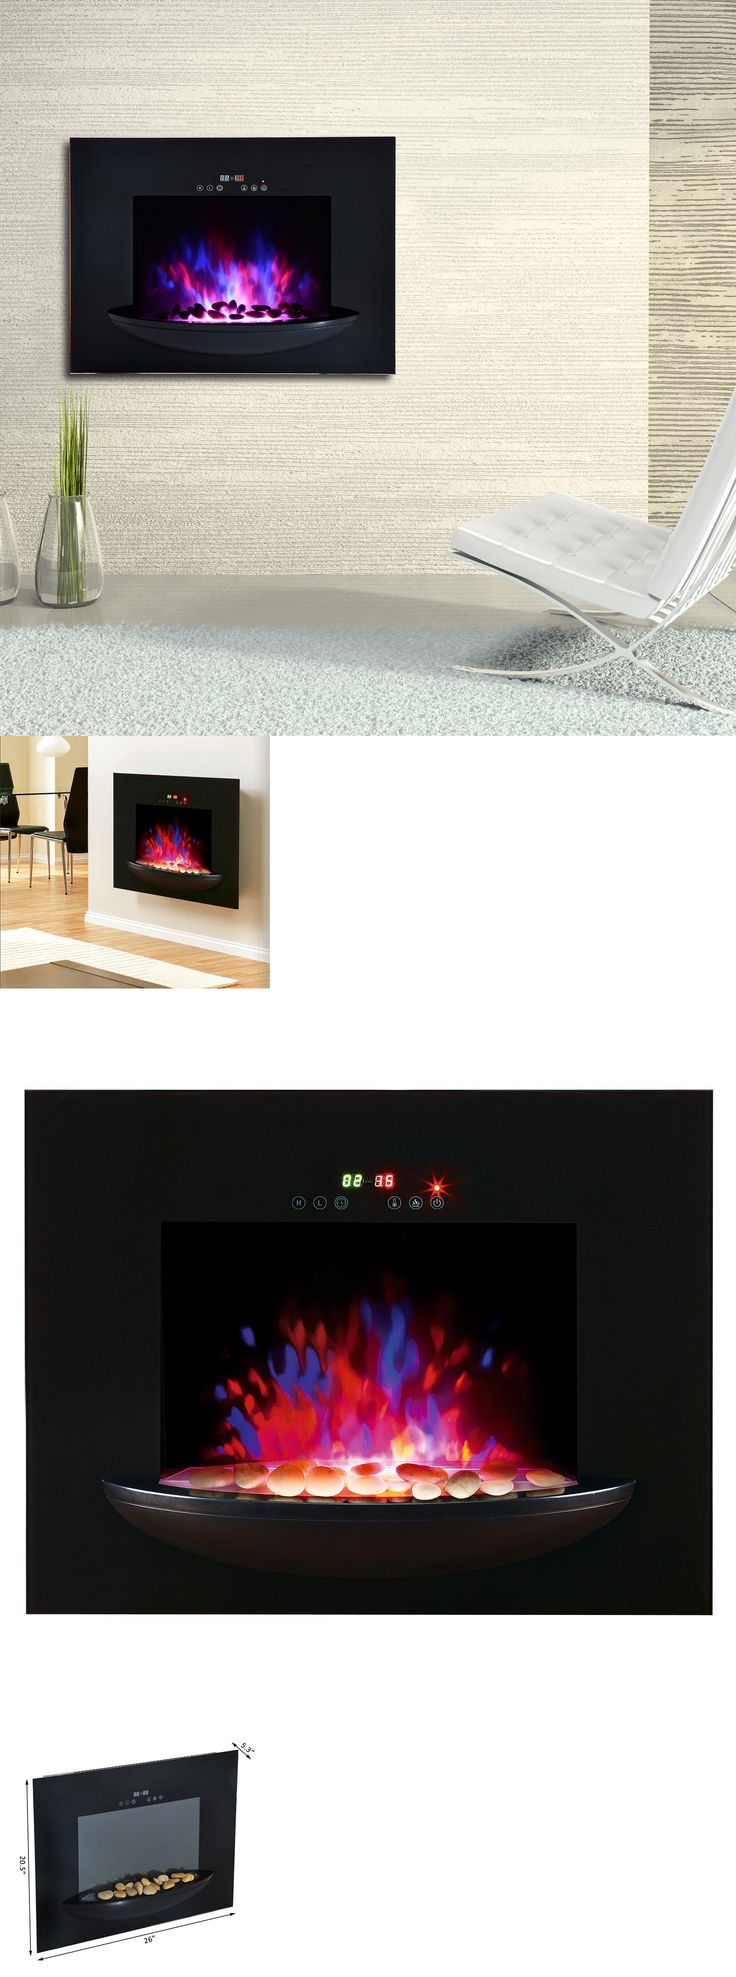 Fireplaces 175756: Homcom Adjustable 1500W Electric Fireplace Heater Wall Mount Elegant Glass View -> BUY IT NOW ONLY: $109.99 on eBay!